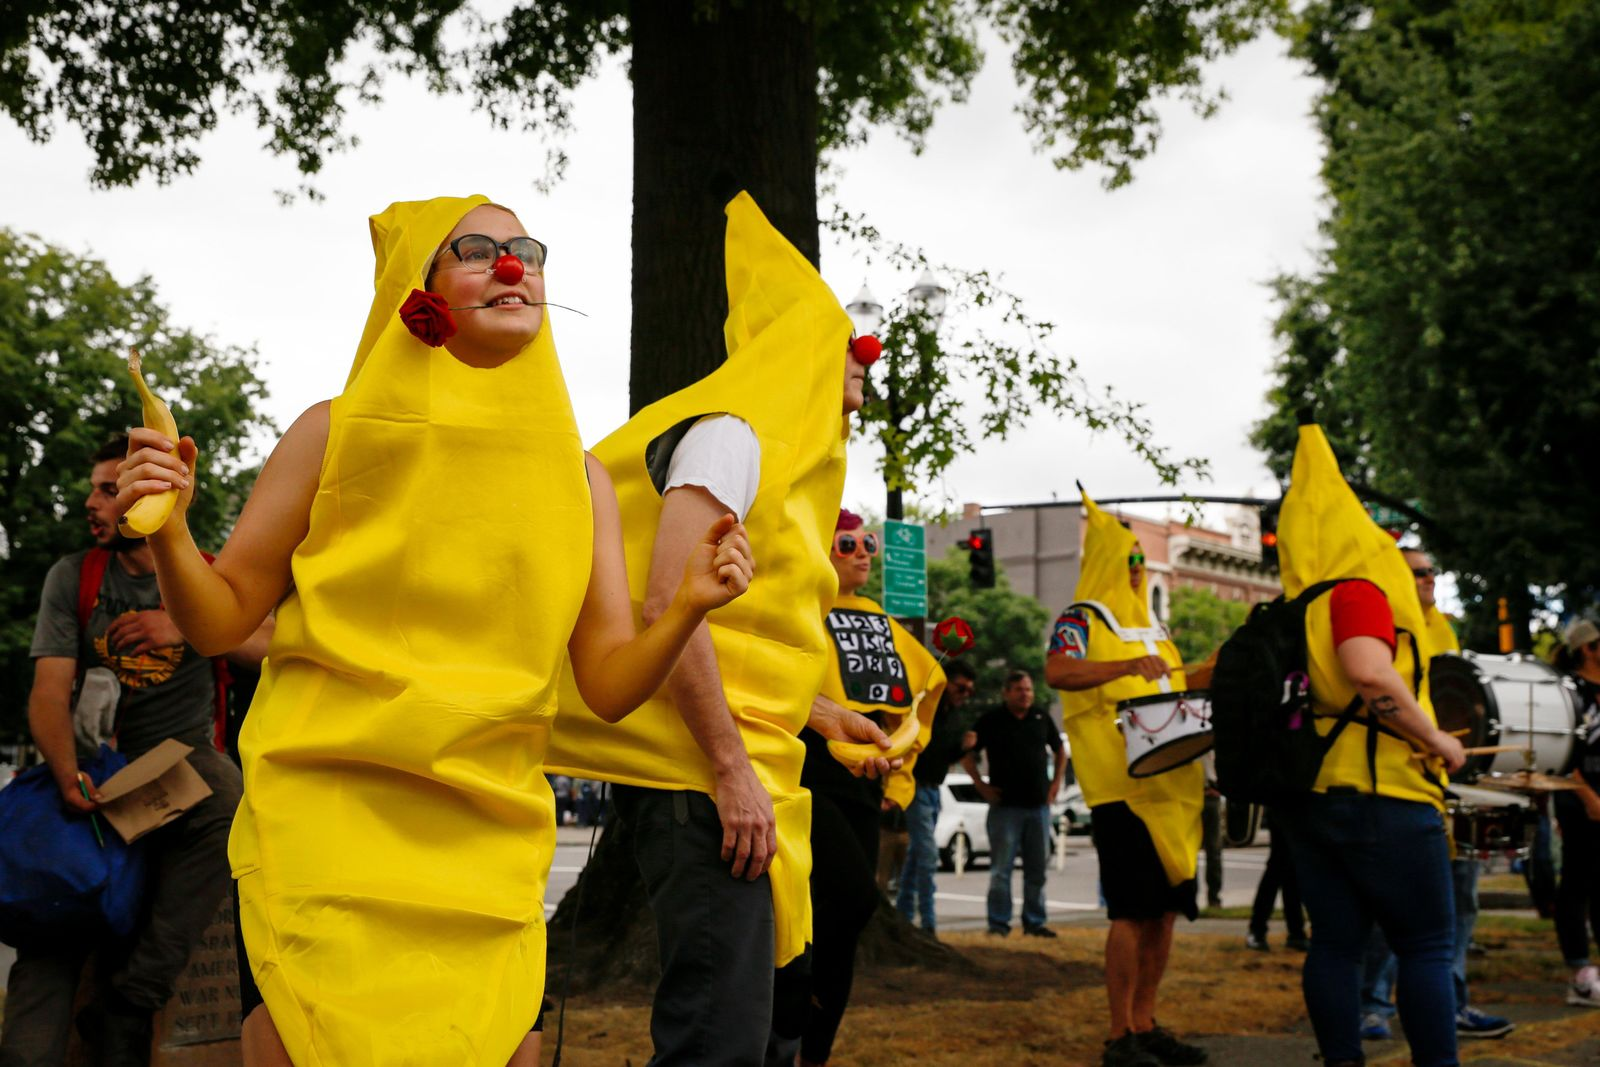 "A ""Banana Bloc Dance Party"" gathering is held near Battleship Oregon Memorial Marine Park on Saturday, Aug. 17, 2019, in downtown Portland, Ore. Hundreds of far-right protesters and anti-fascist counter-demonstrators swarmed the downtown area, as police set up concrete barriers and closed streets and bridges in an effort to contain and separate the rival groups. (AP Photo/Moriah Ratner)"